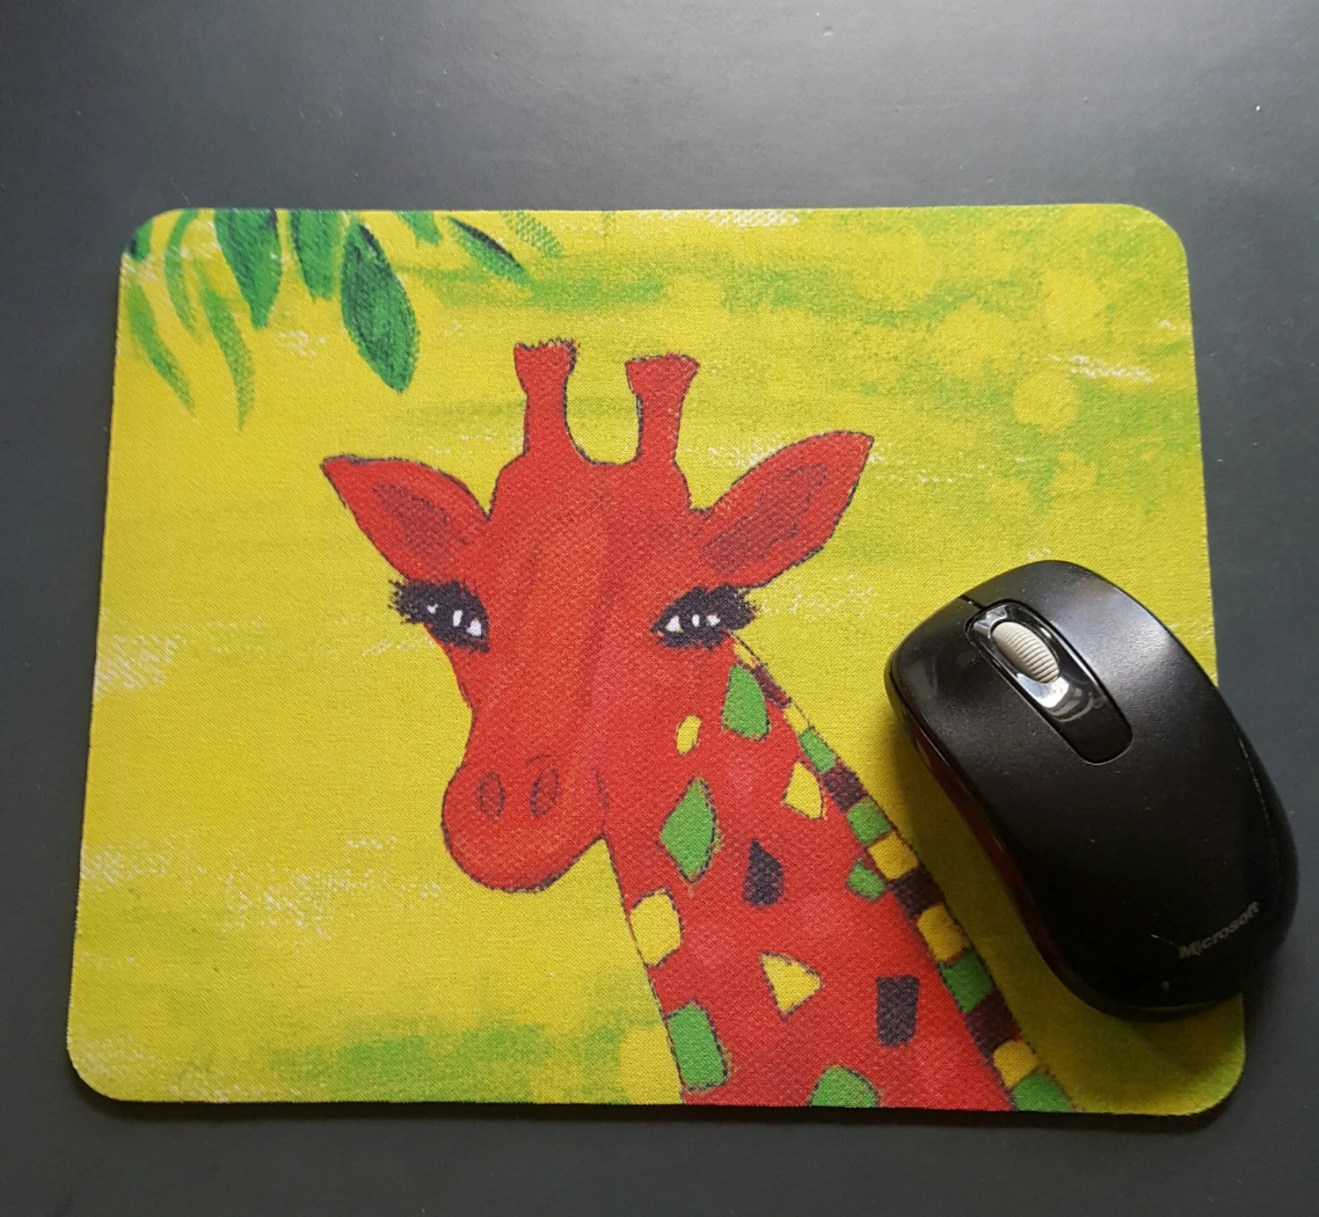 Mouse Pad, Mouse Mat, Mousepad, Giraffe Mouse Pad, Christmas Gift, Holiday Gift, Birthday Gift, Eletronics Computers, Coworker Gift Niceroom Custom Gaming Mouse Pad Btc Blank Bitcoin Niceroom Custom Gaming Mouse Pad Btc Blank Bitcoin il 570xN